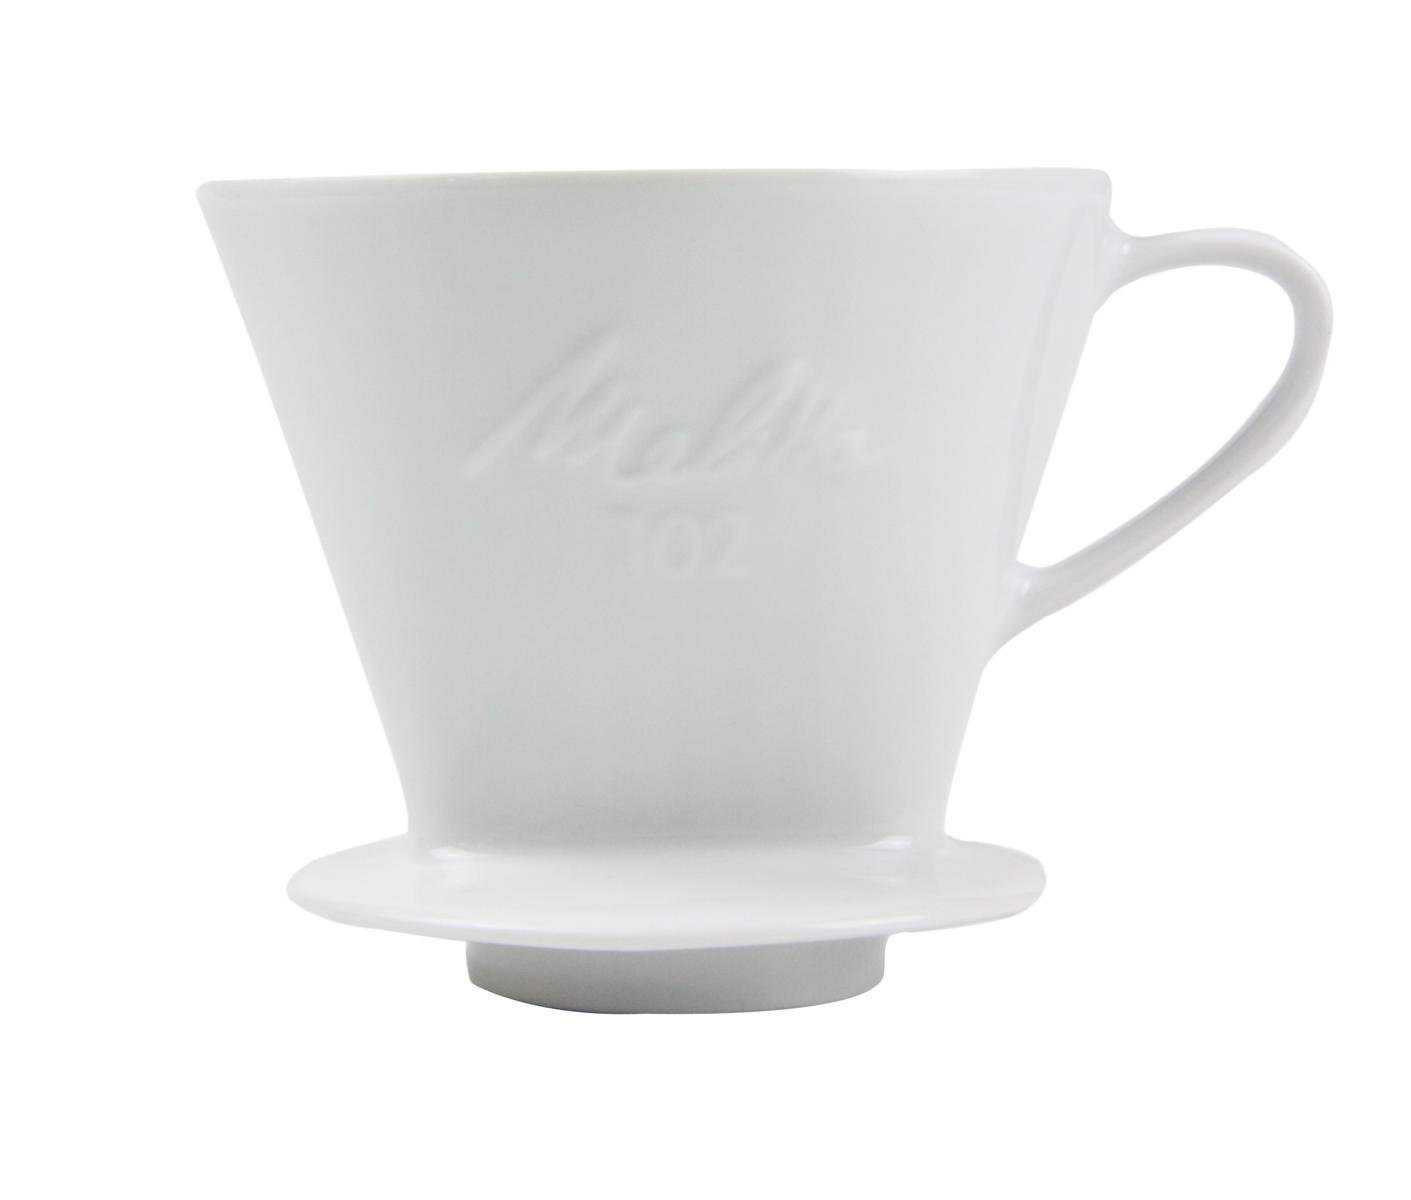 Melitta kaffee filter Fertigset_